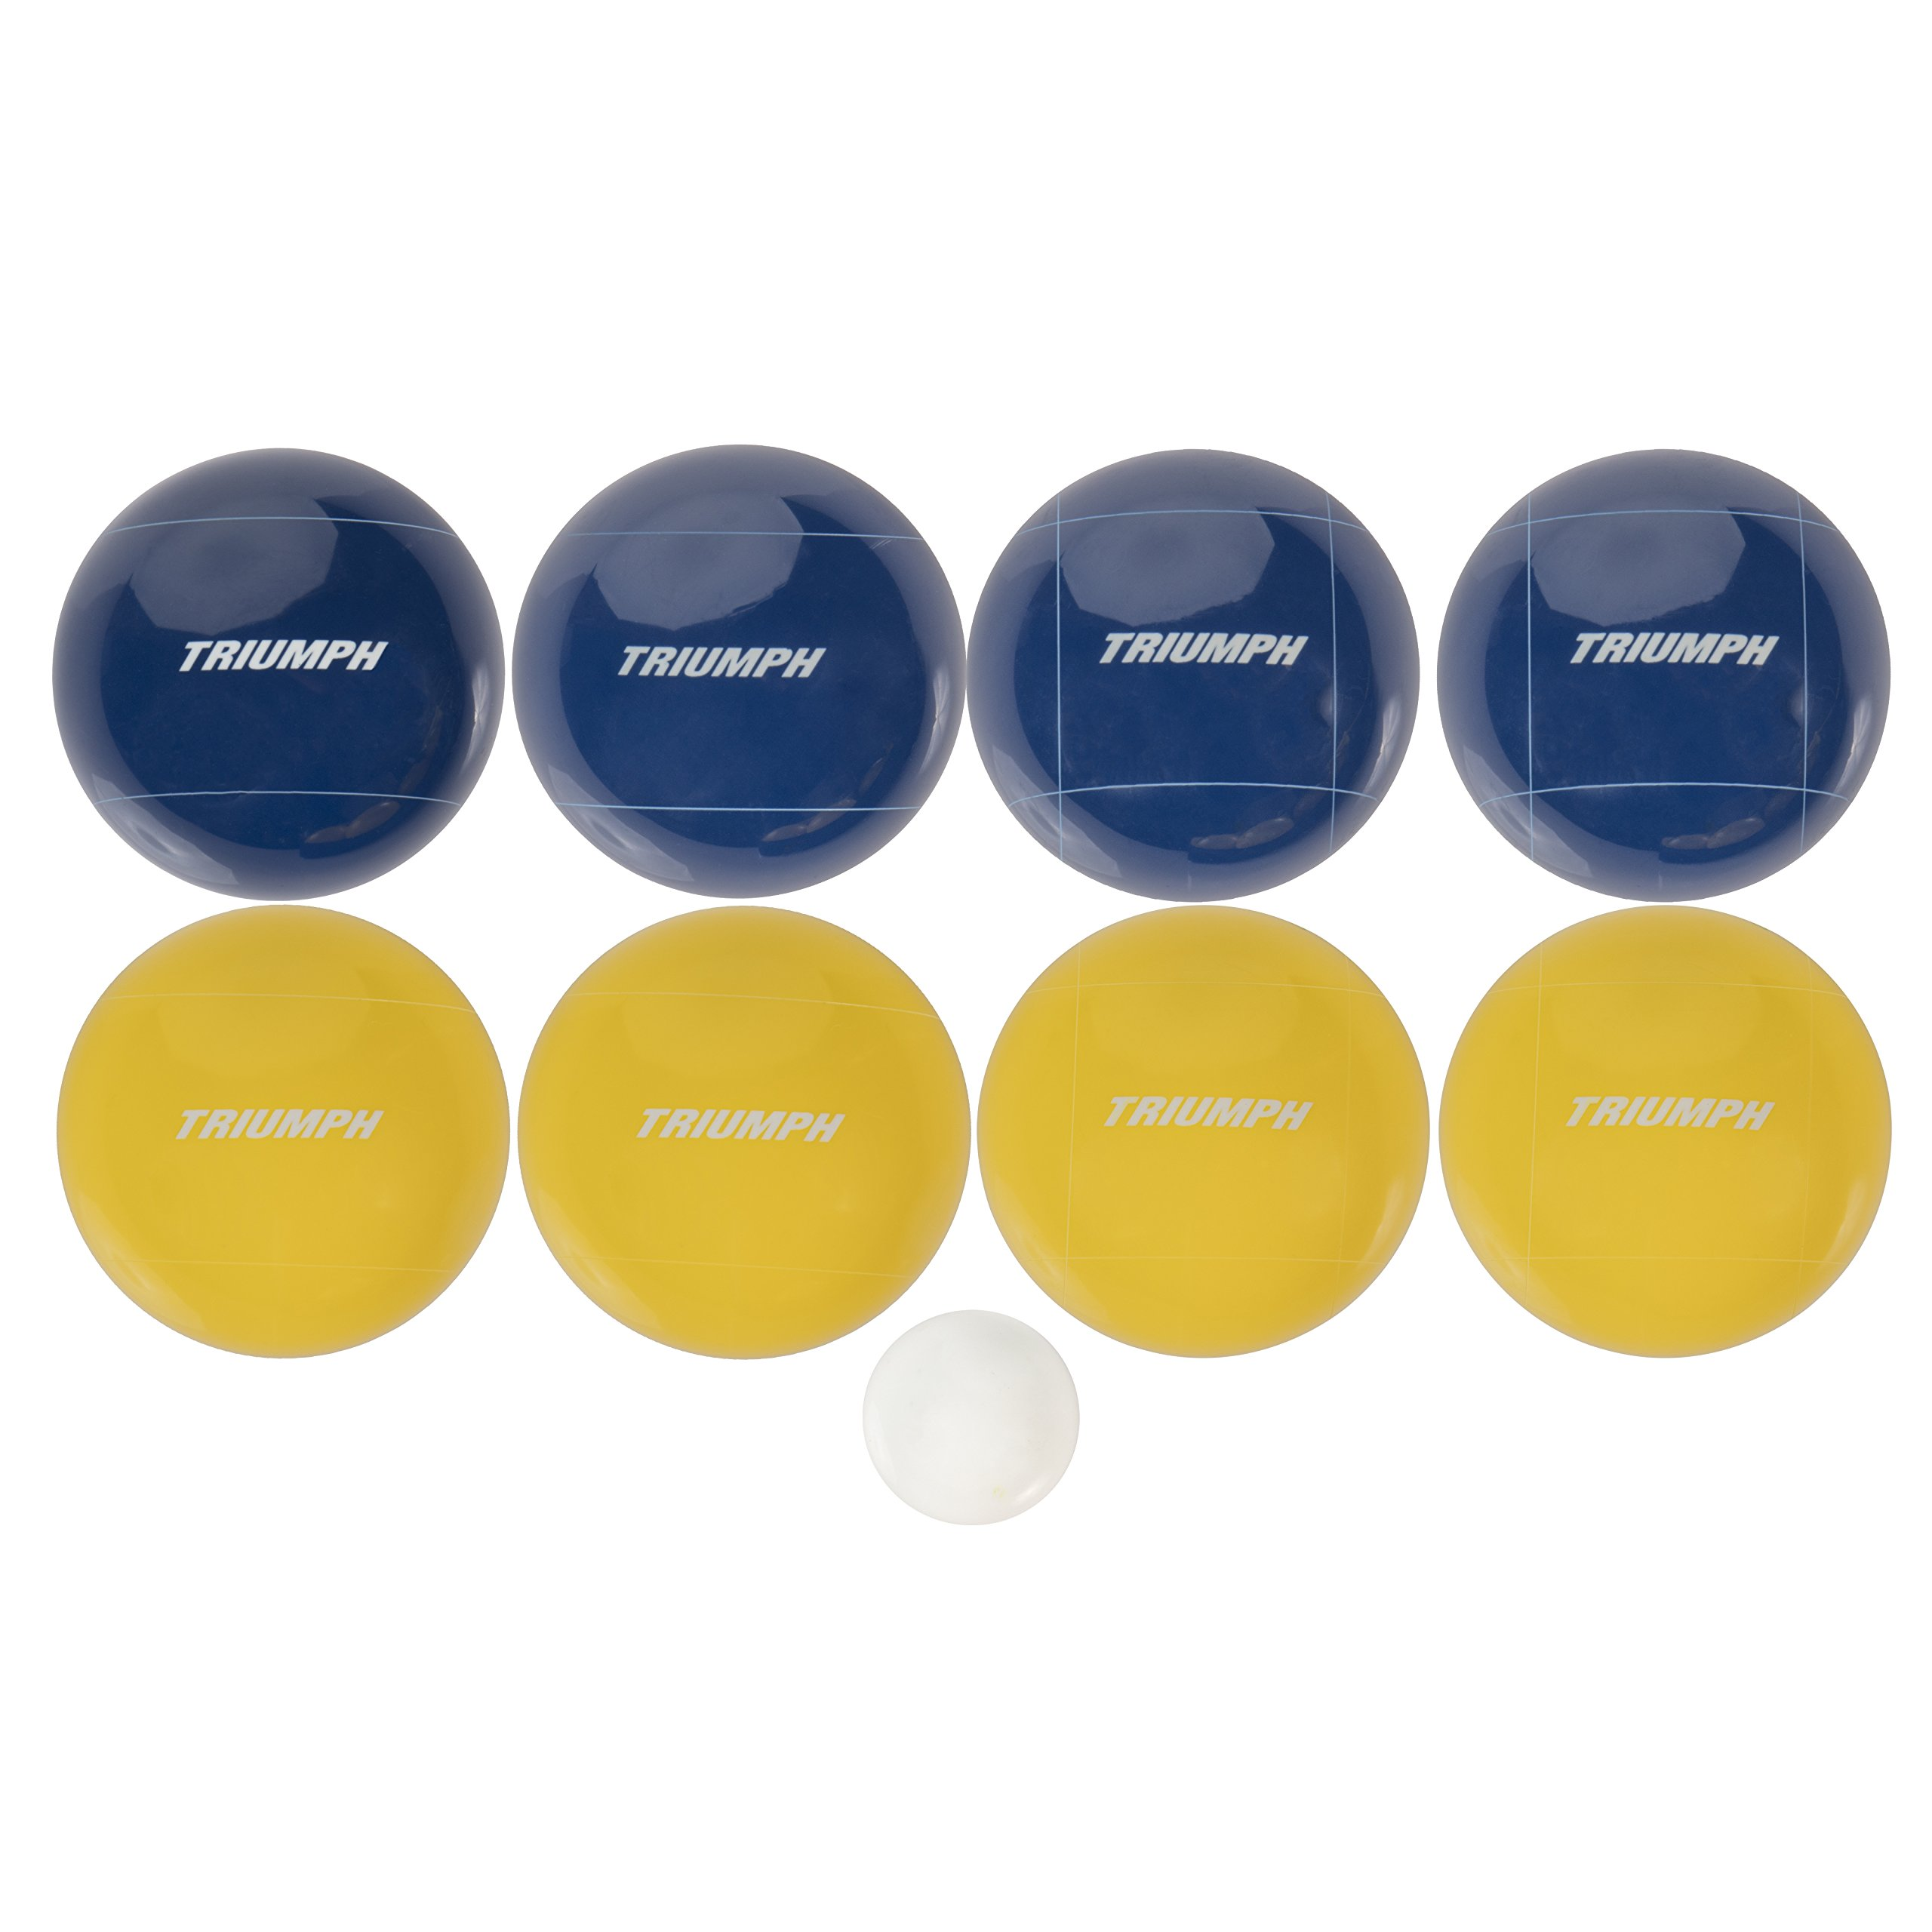 Triumph All Pro 100mm Bocce Set Includes Eight Bocce Balls, One 50mm Jack, and Carry Bag by Triumph Sports (Image #2)